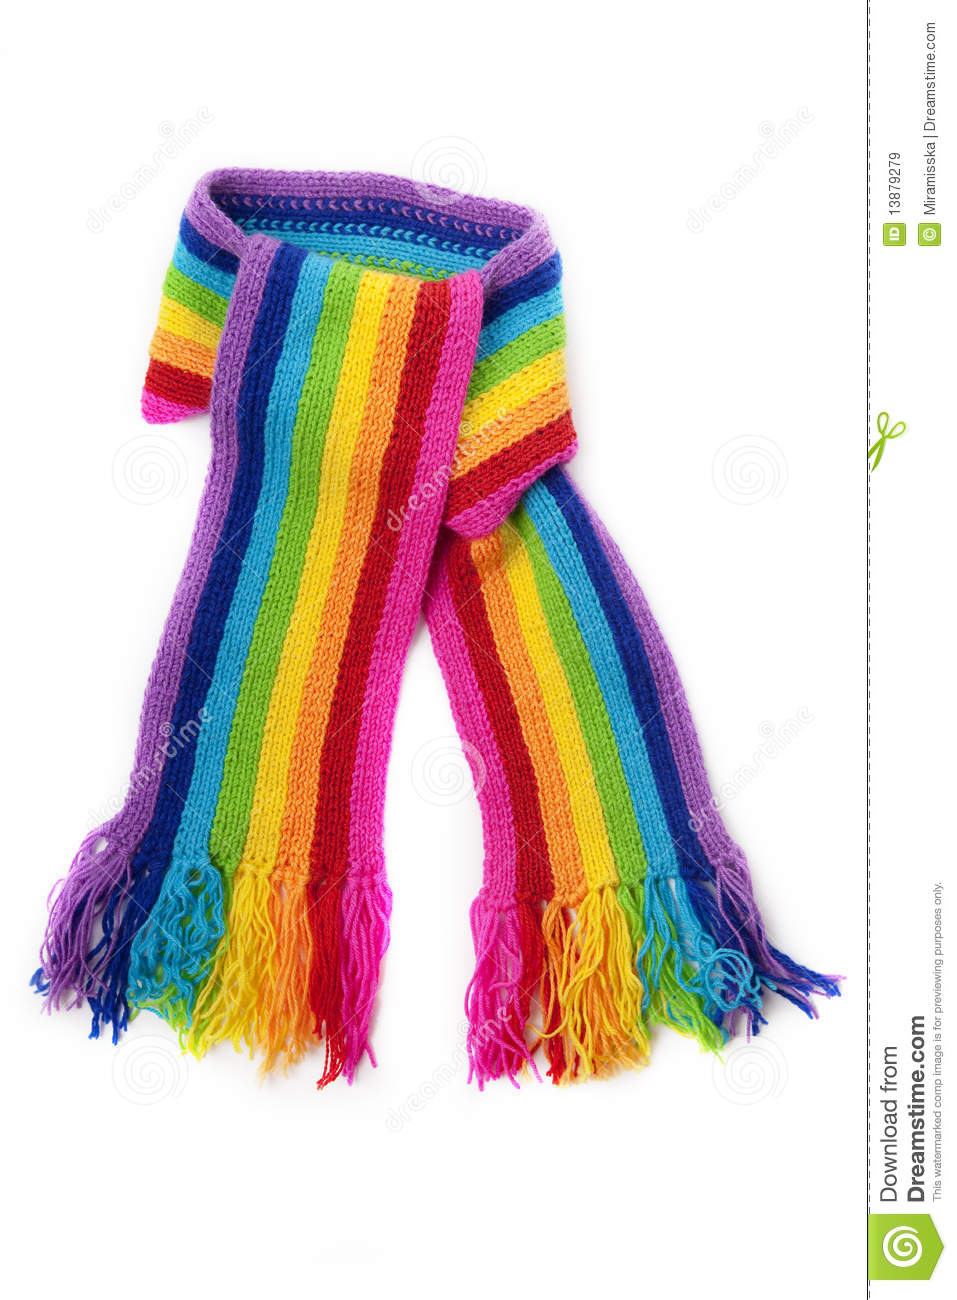 Knitting Pattern For Rainbow Scarf : Bright Rainbow Knitted Scarf Royalty Free Stock Images - Image: 13879279